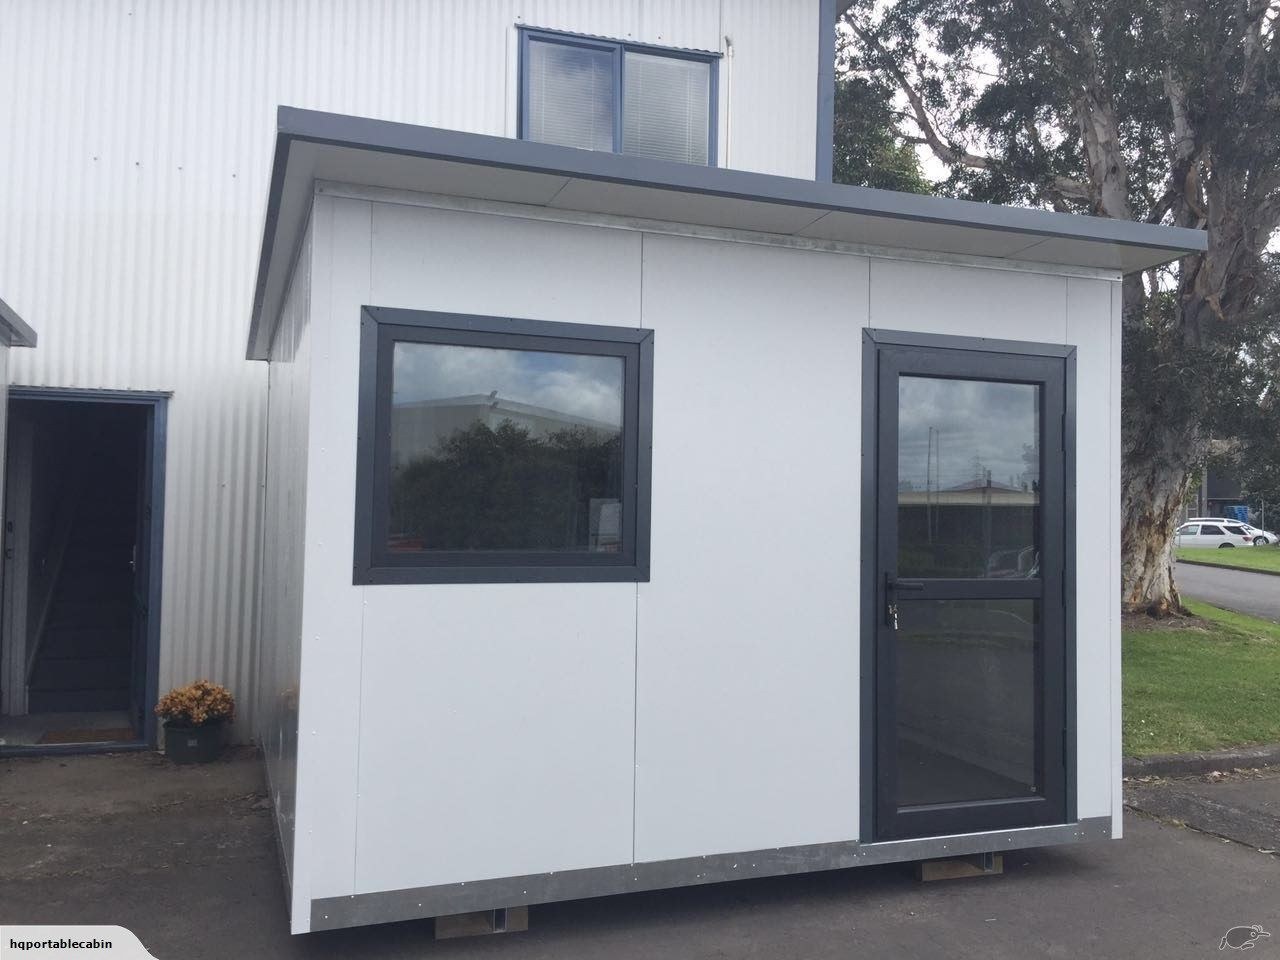 For More Information Please Visit Our Website Www Containerhomeshouses Com Email Sales1 Containerhomeshouses Com